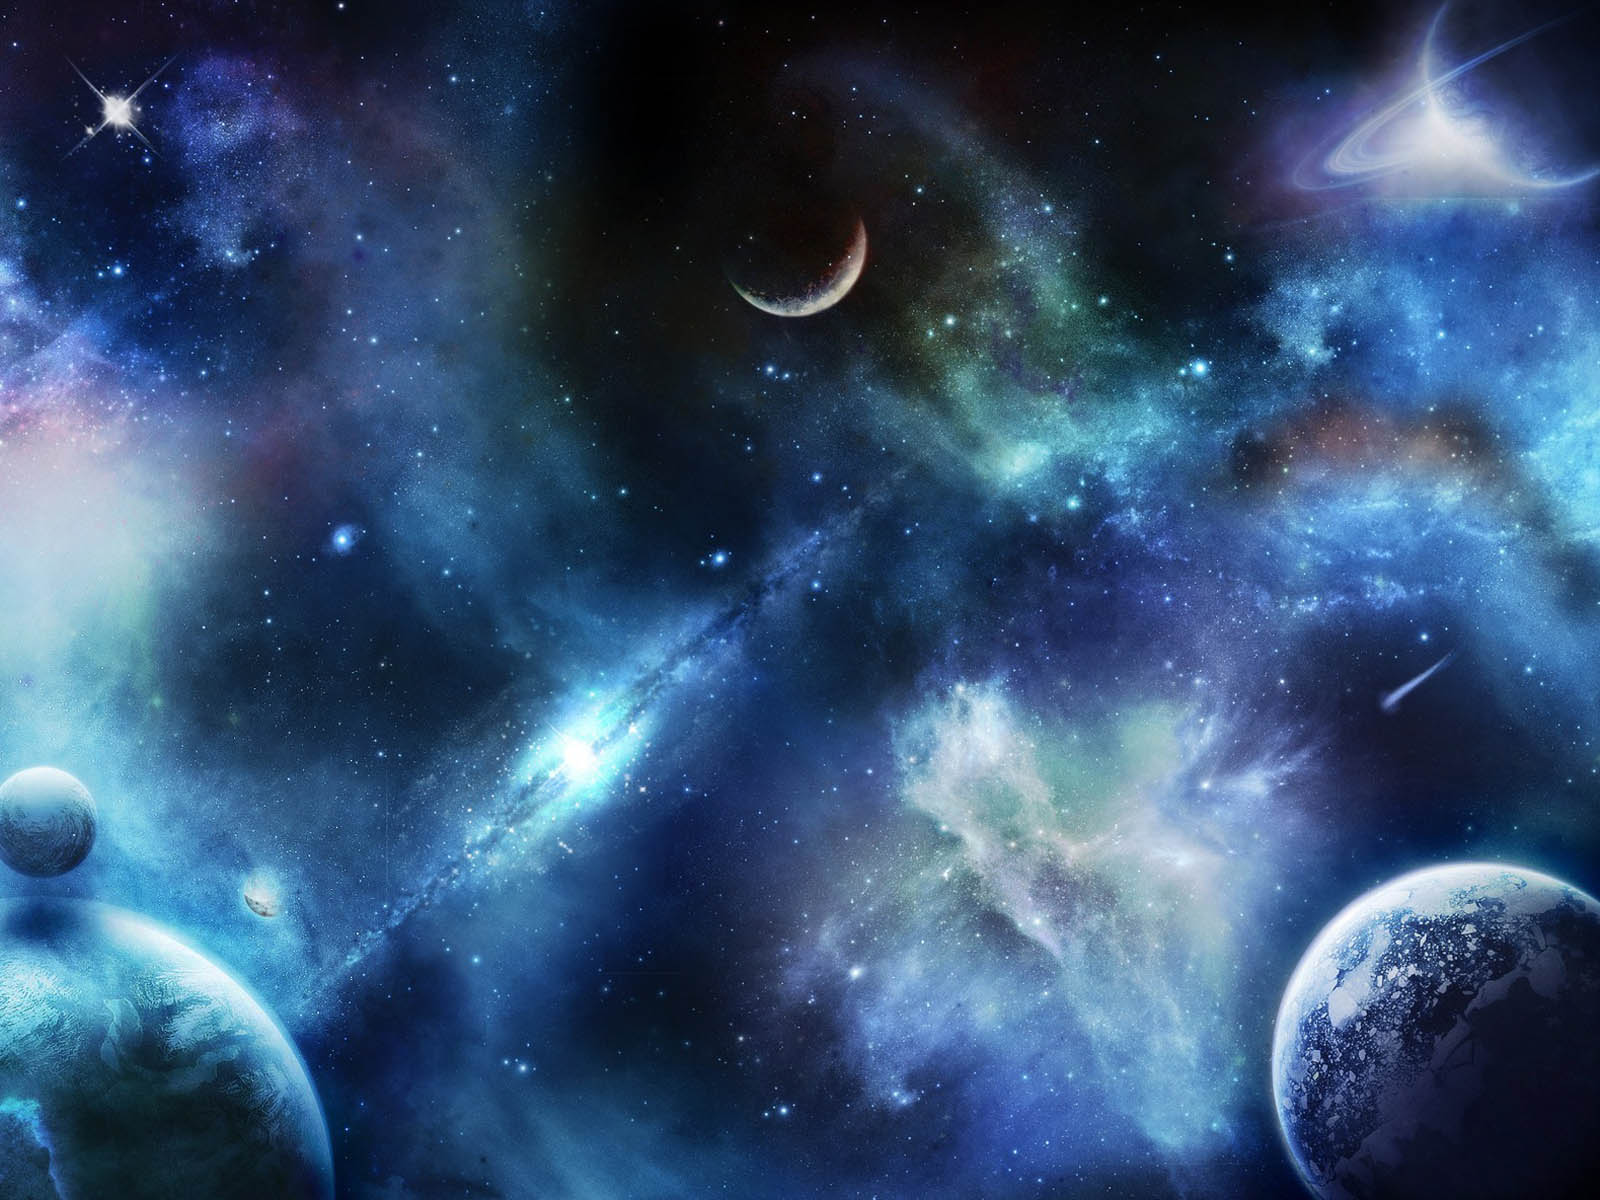 Cool outer space wallpaper wallpapersafari - Cool space wallpapers ...